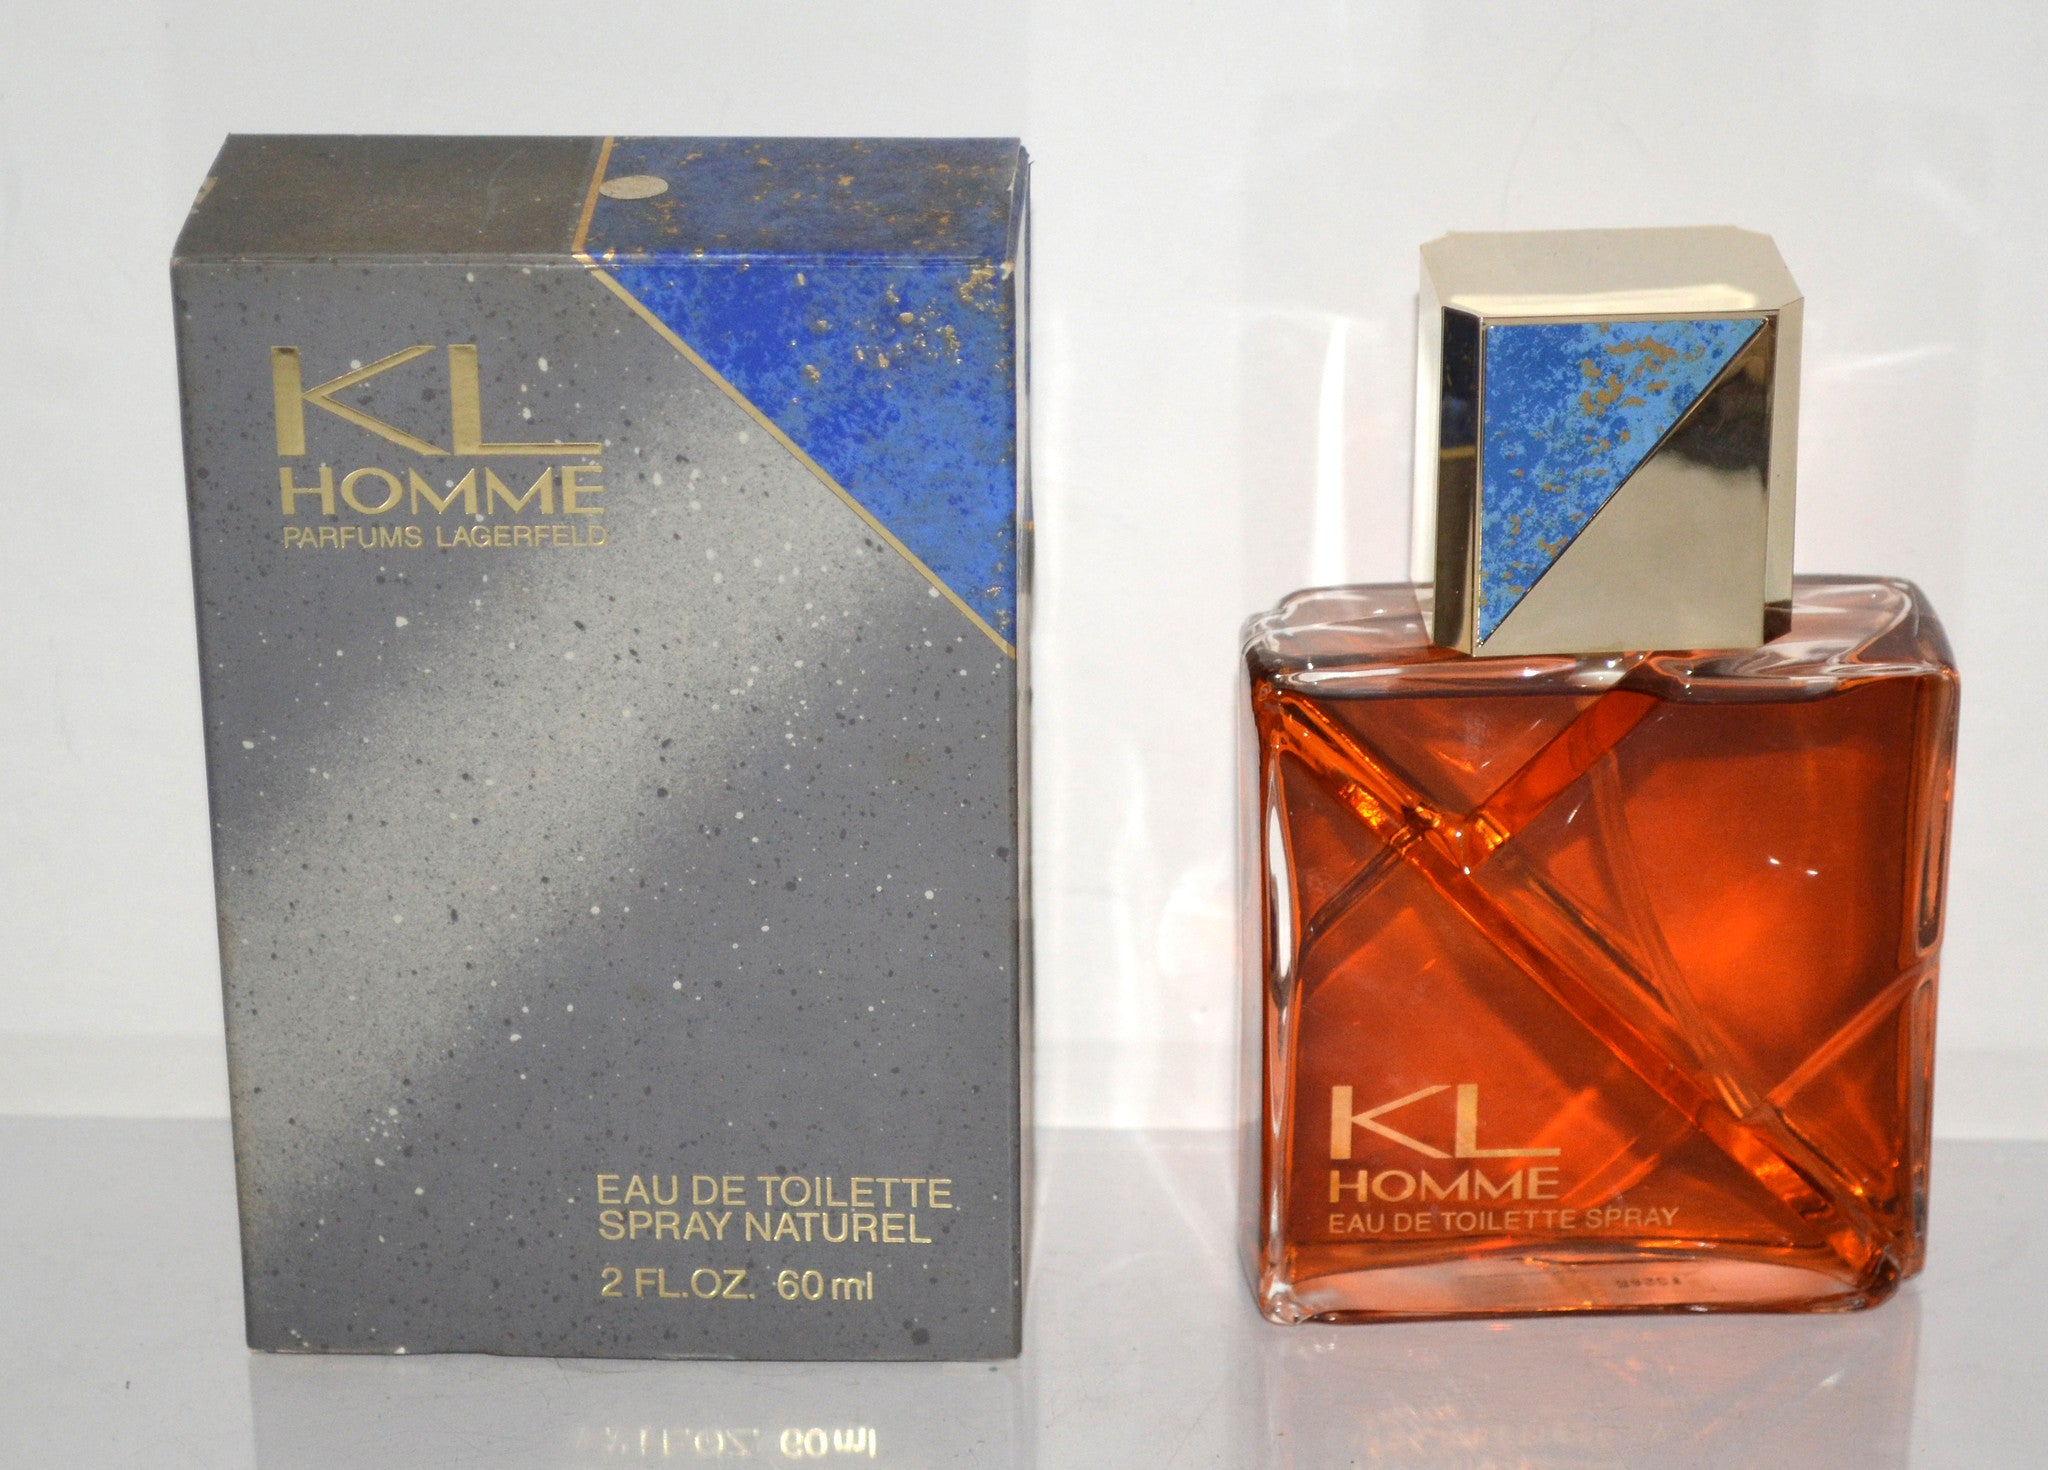 Parfums Lagerfeld KL Homme Eau De Toilette Naturel Spray